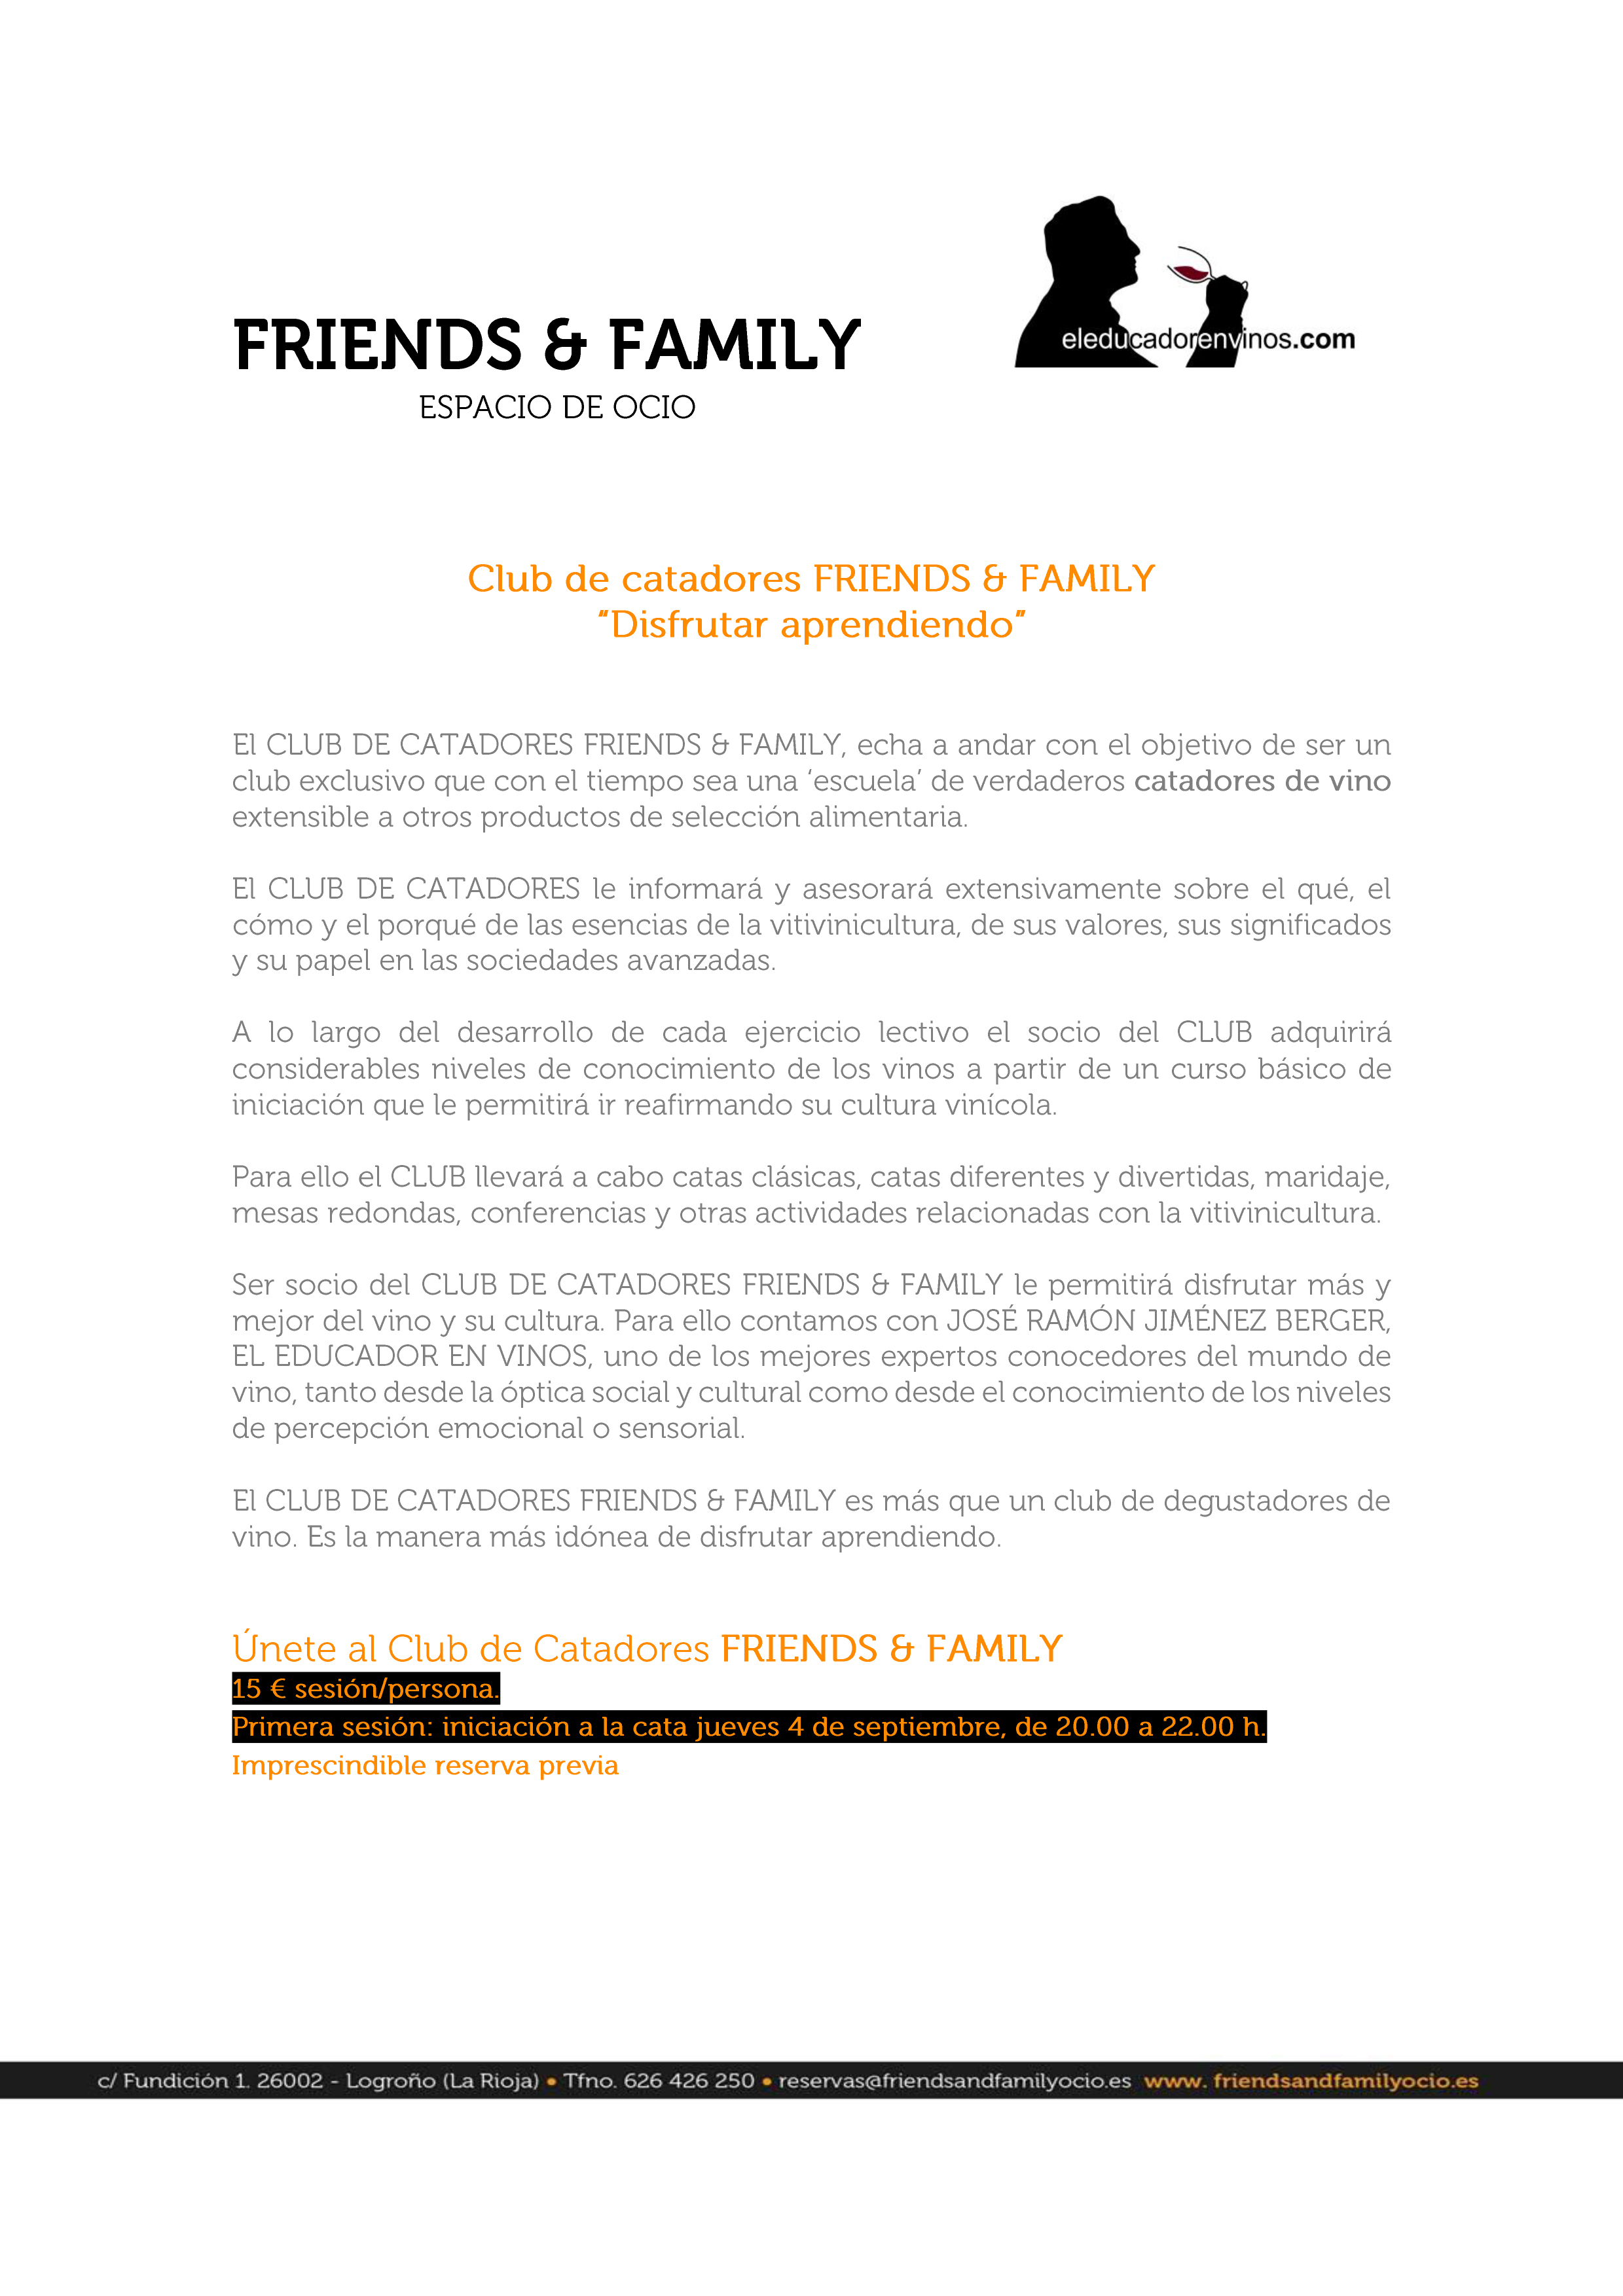 FRIENDS_Club de catadores_enlace